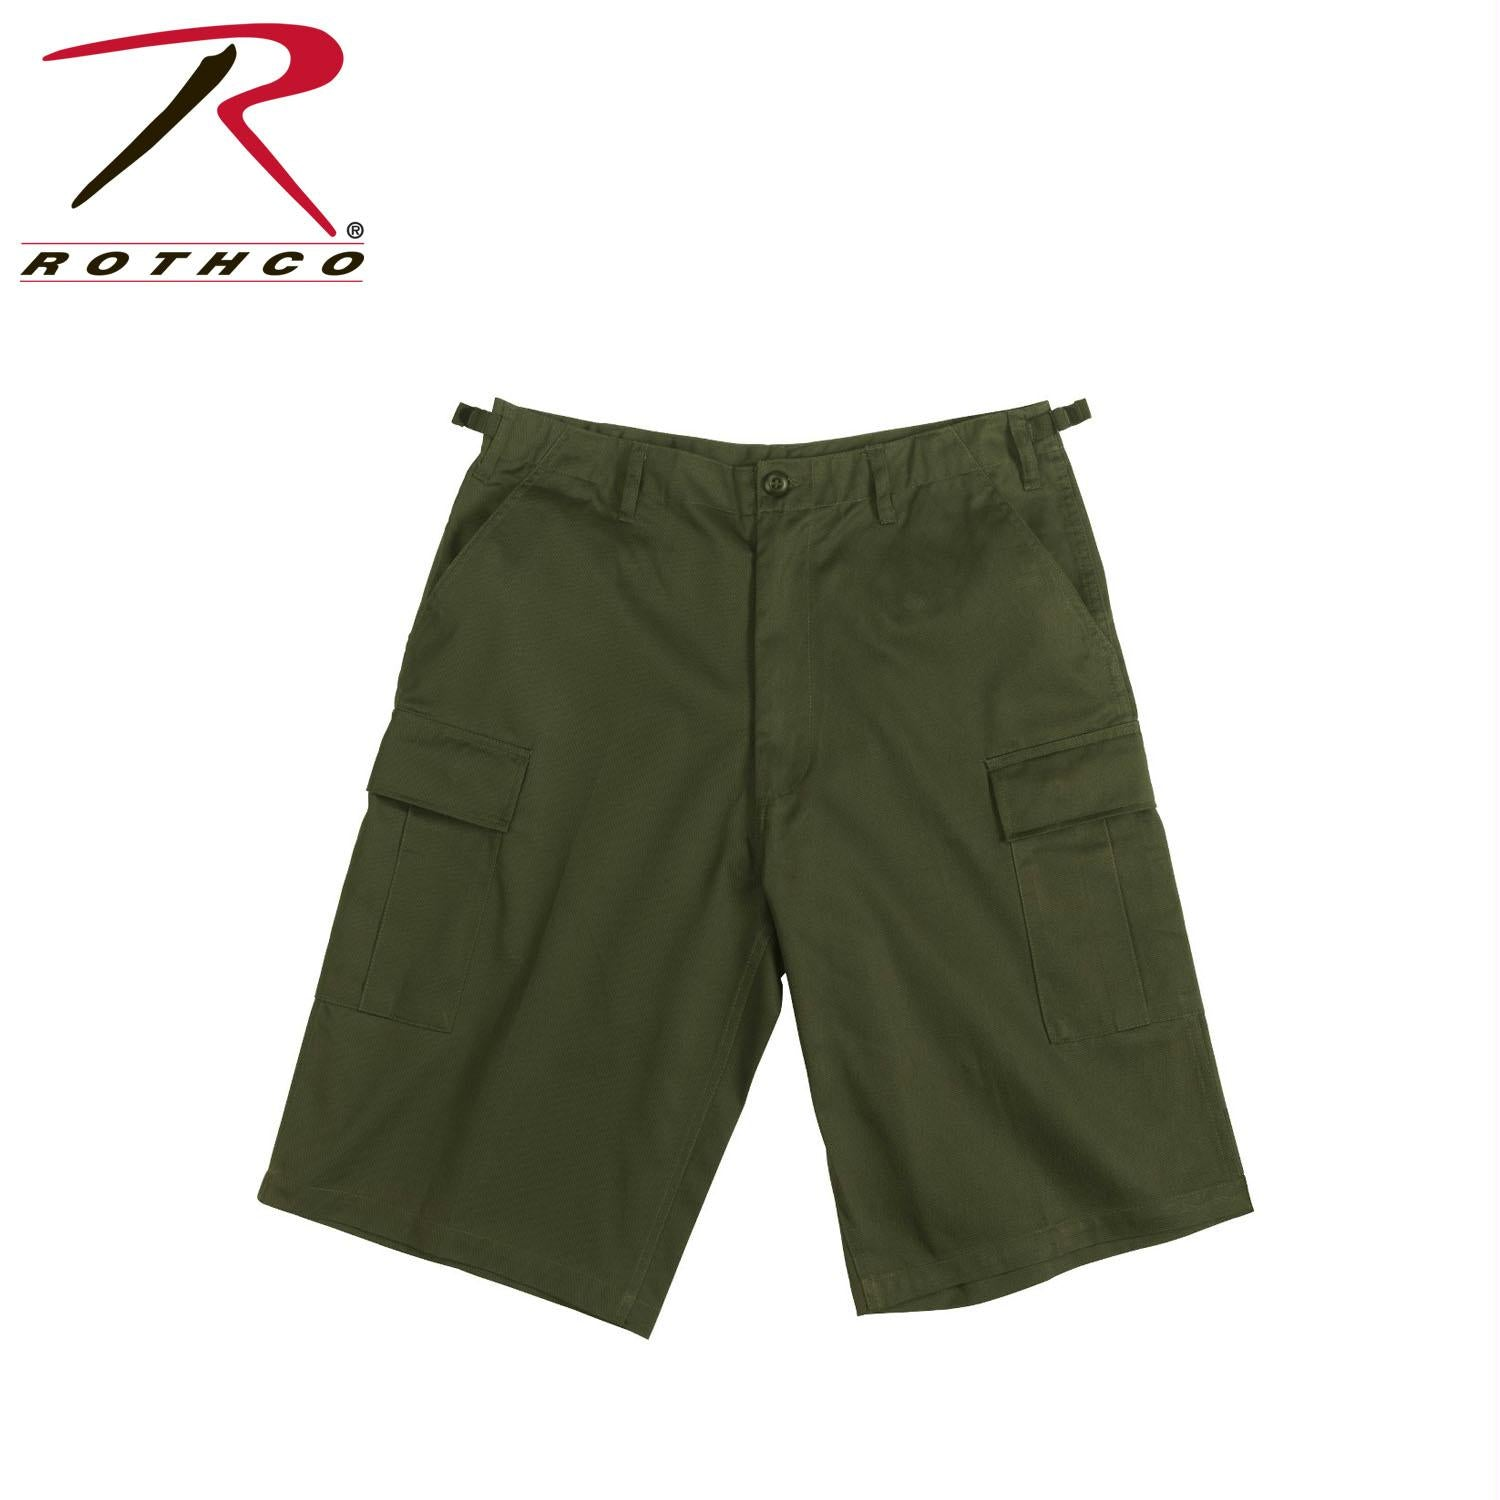 Rothco Long Length BDU Short - Olive Drab / S